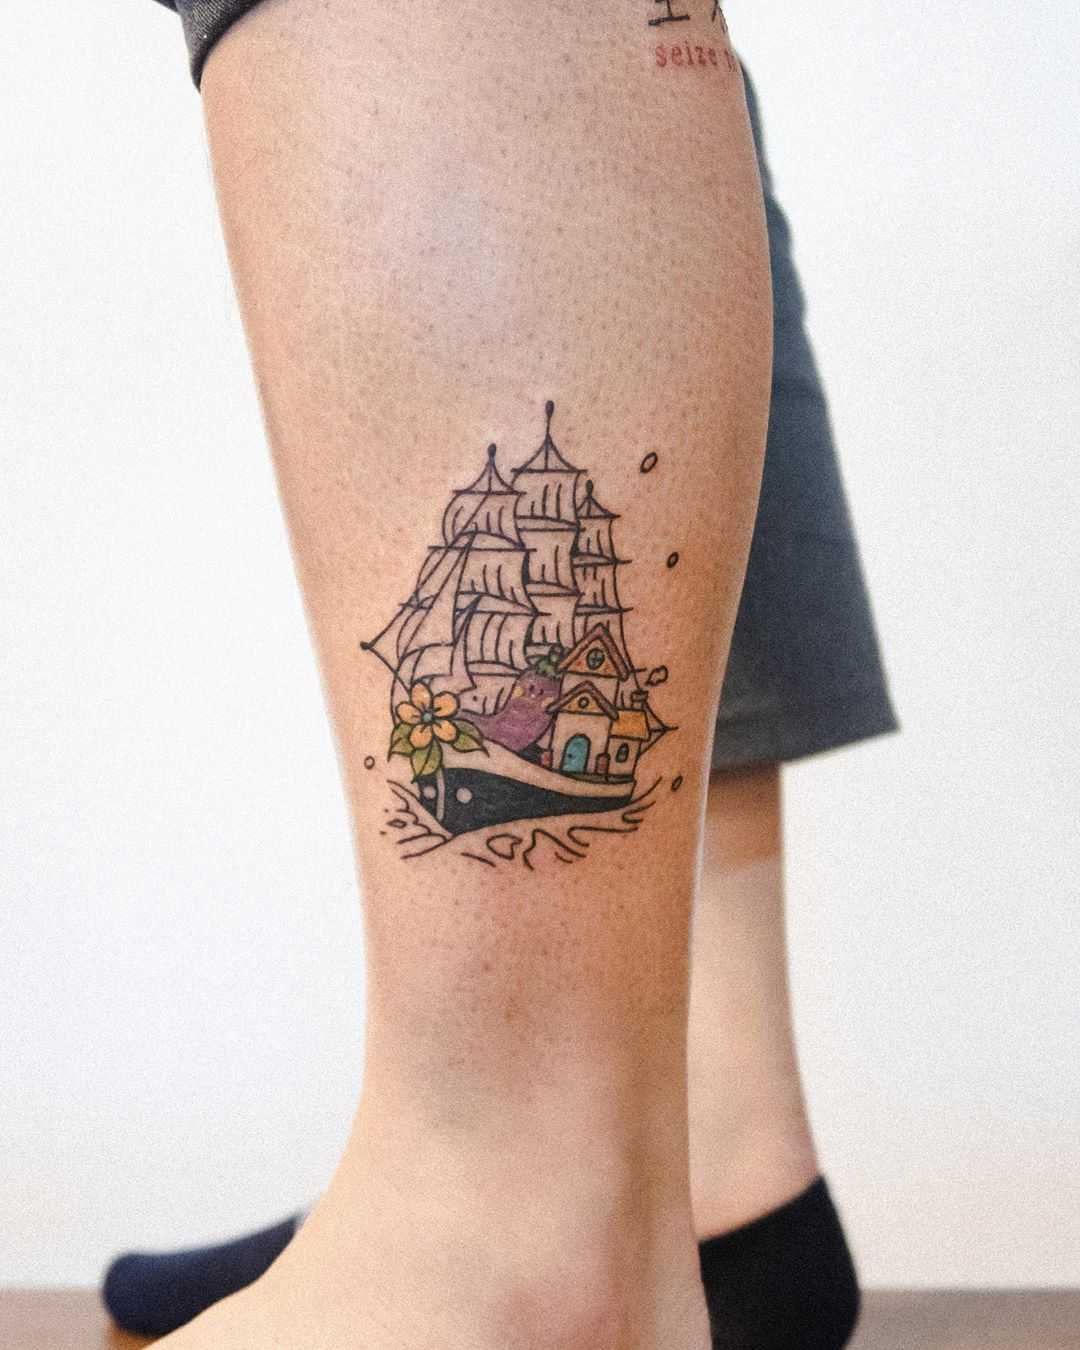 Vegetable ship by tattooist Bongkee